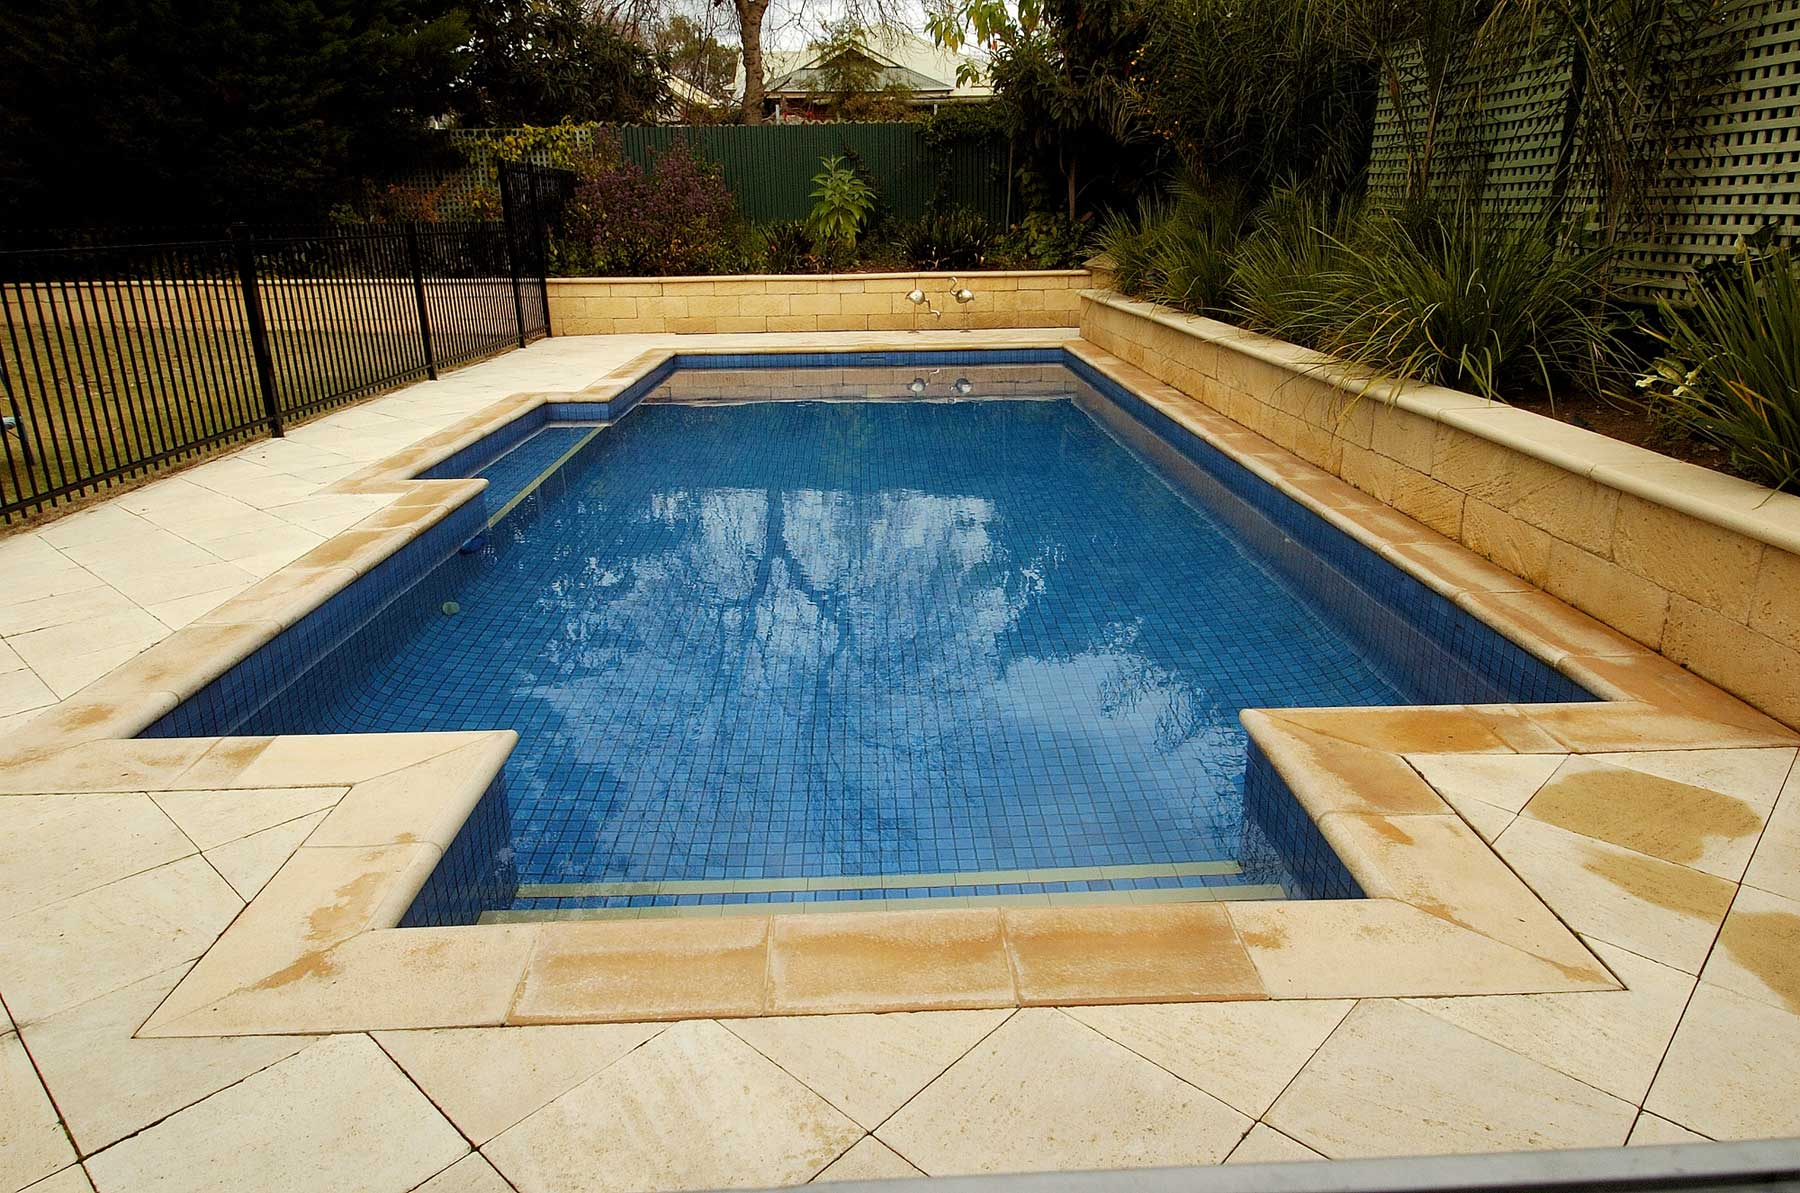 Exciting swimming pool designs adelaide images simple for Concrete swimming pool